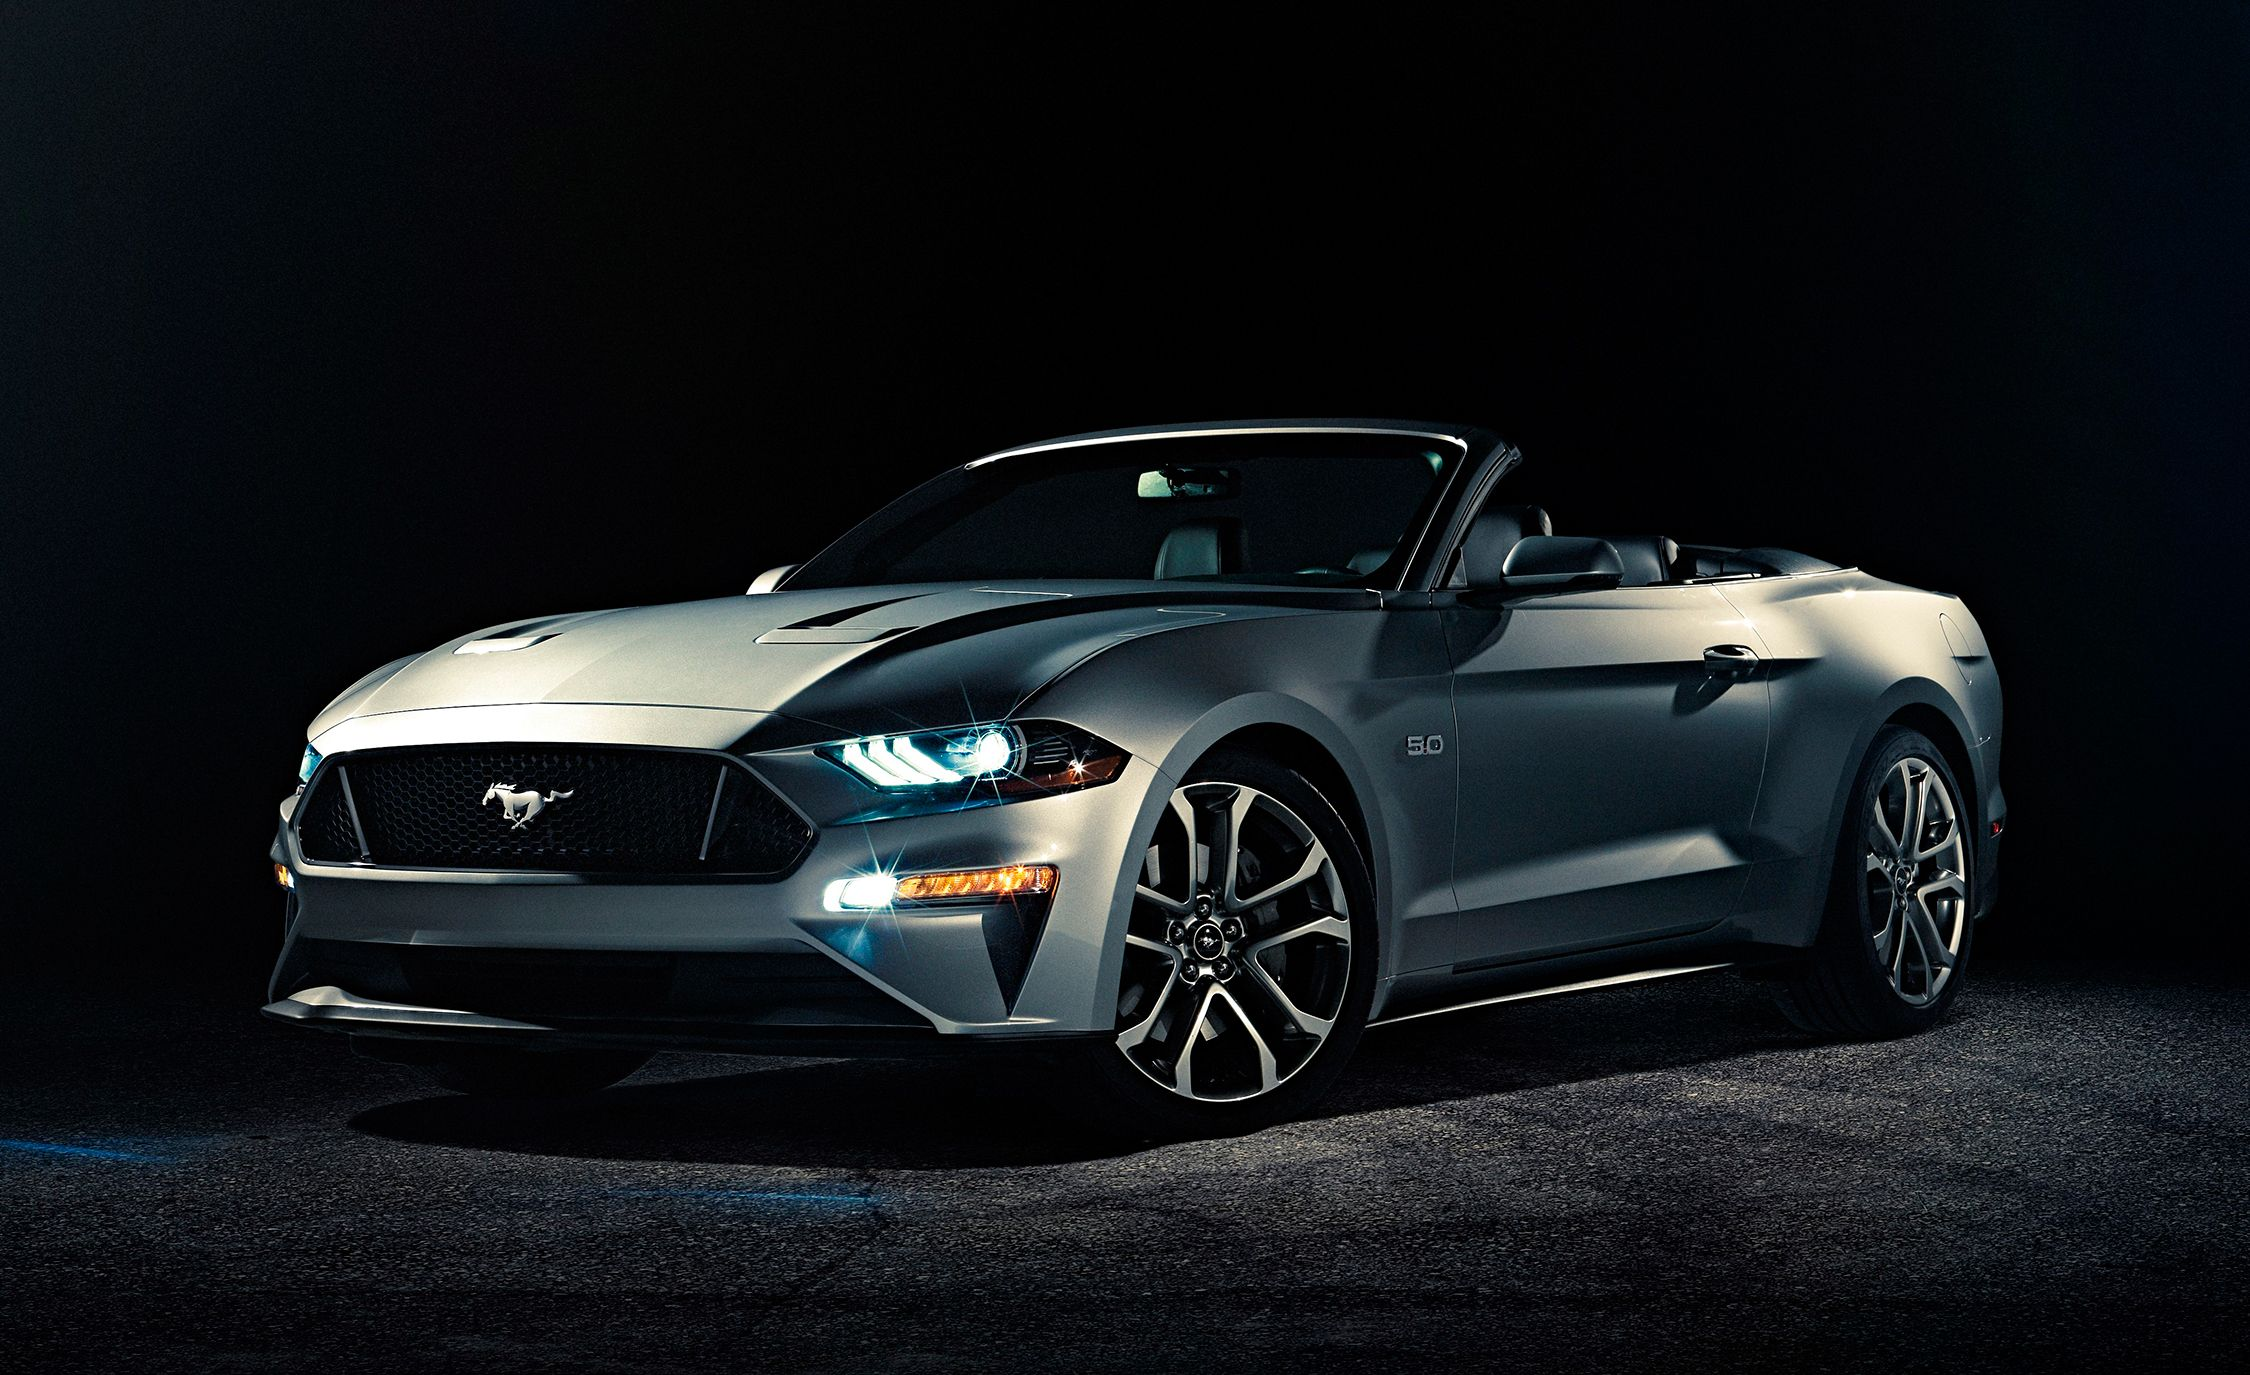 2018 Ford Mustang Convertible: Renewed Droptop